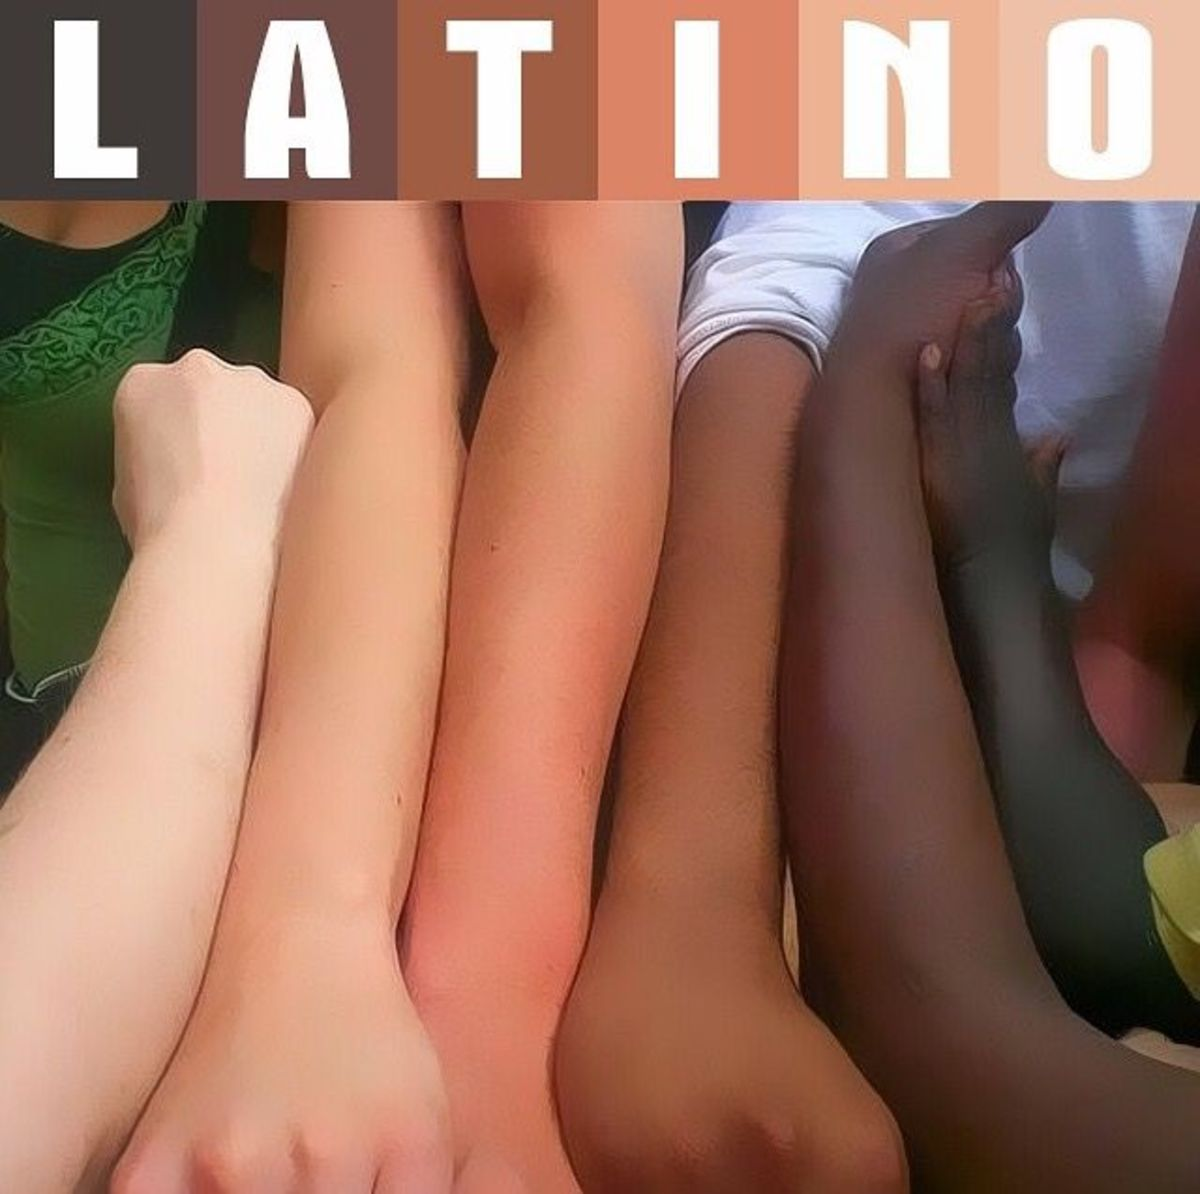 a-message-to-americans-hispaniclatino-is-not-a-race